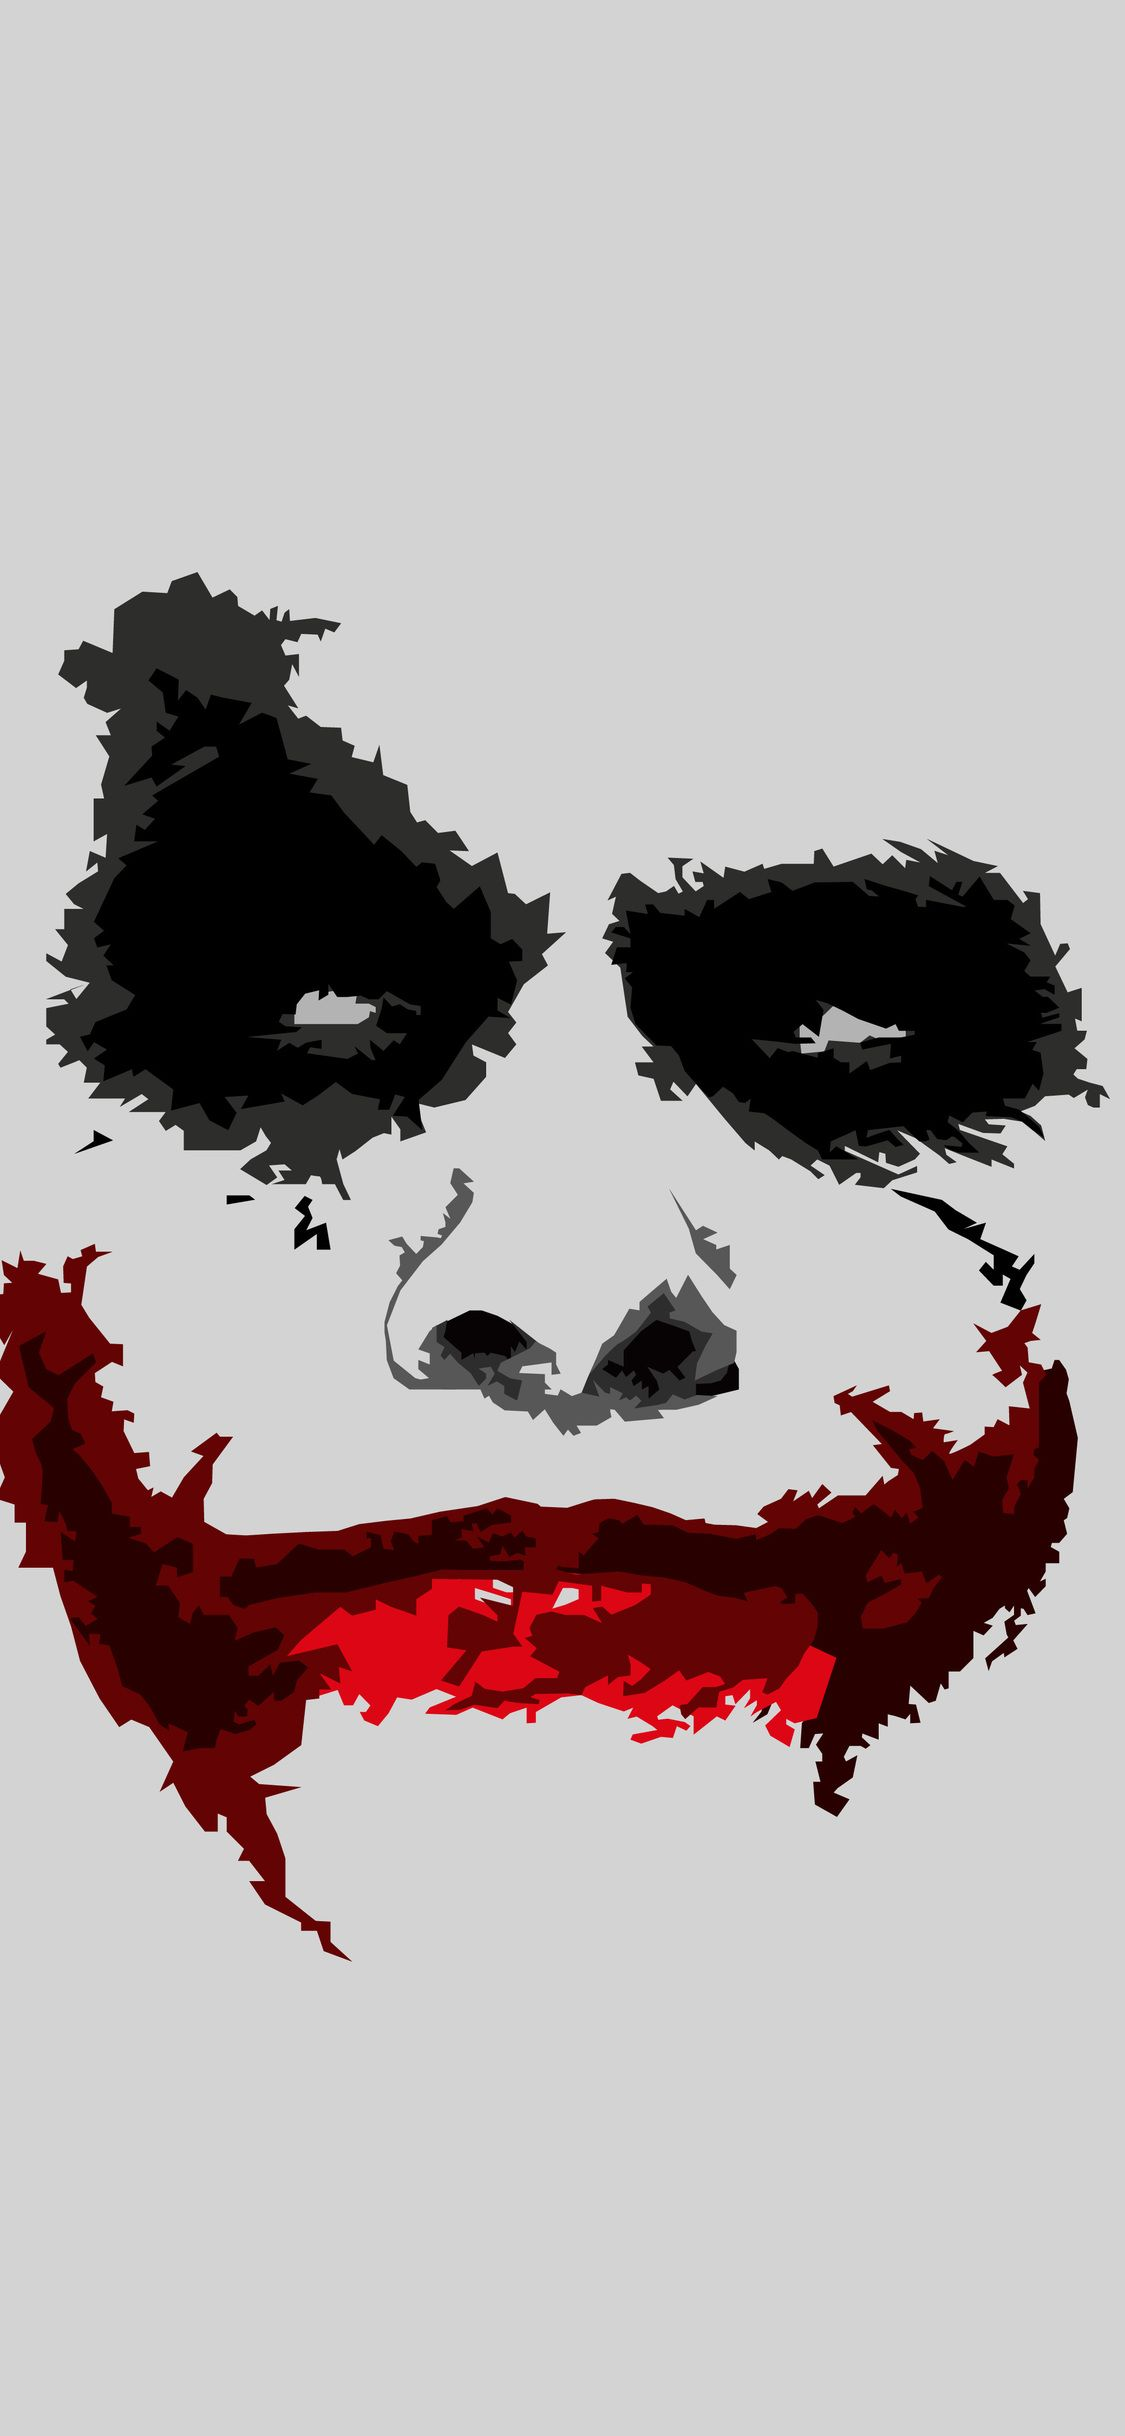 Joker 8k Minimalism Iphone X Joker 8k ...